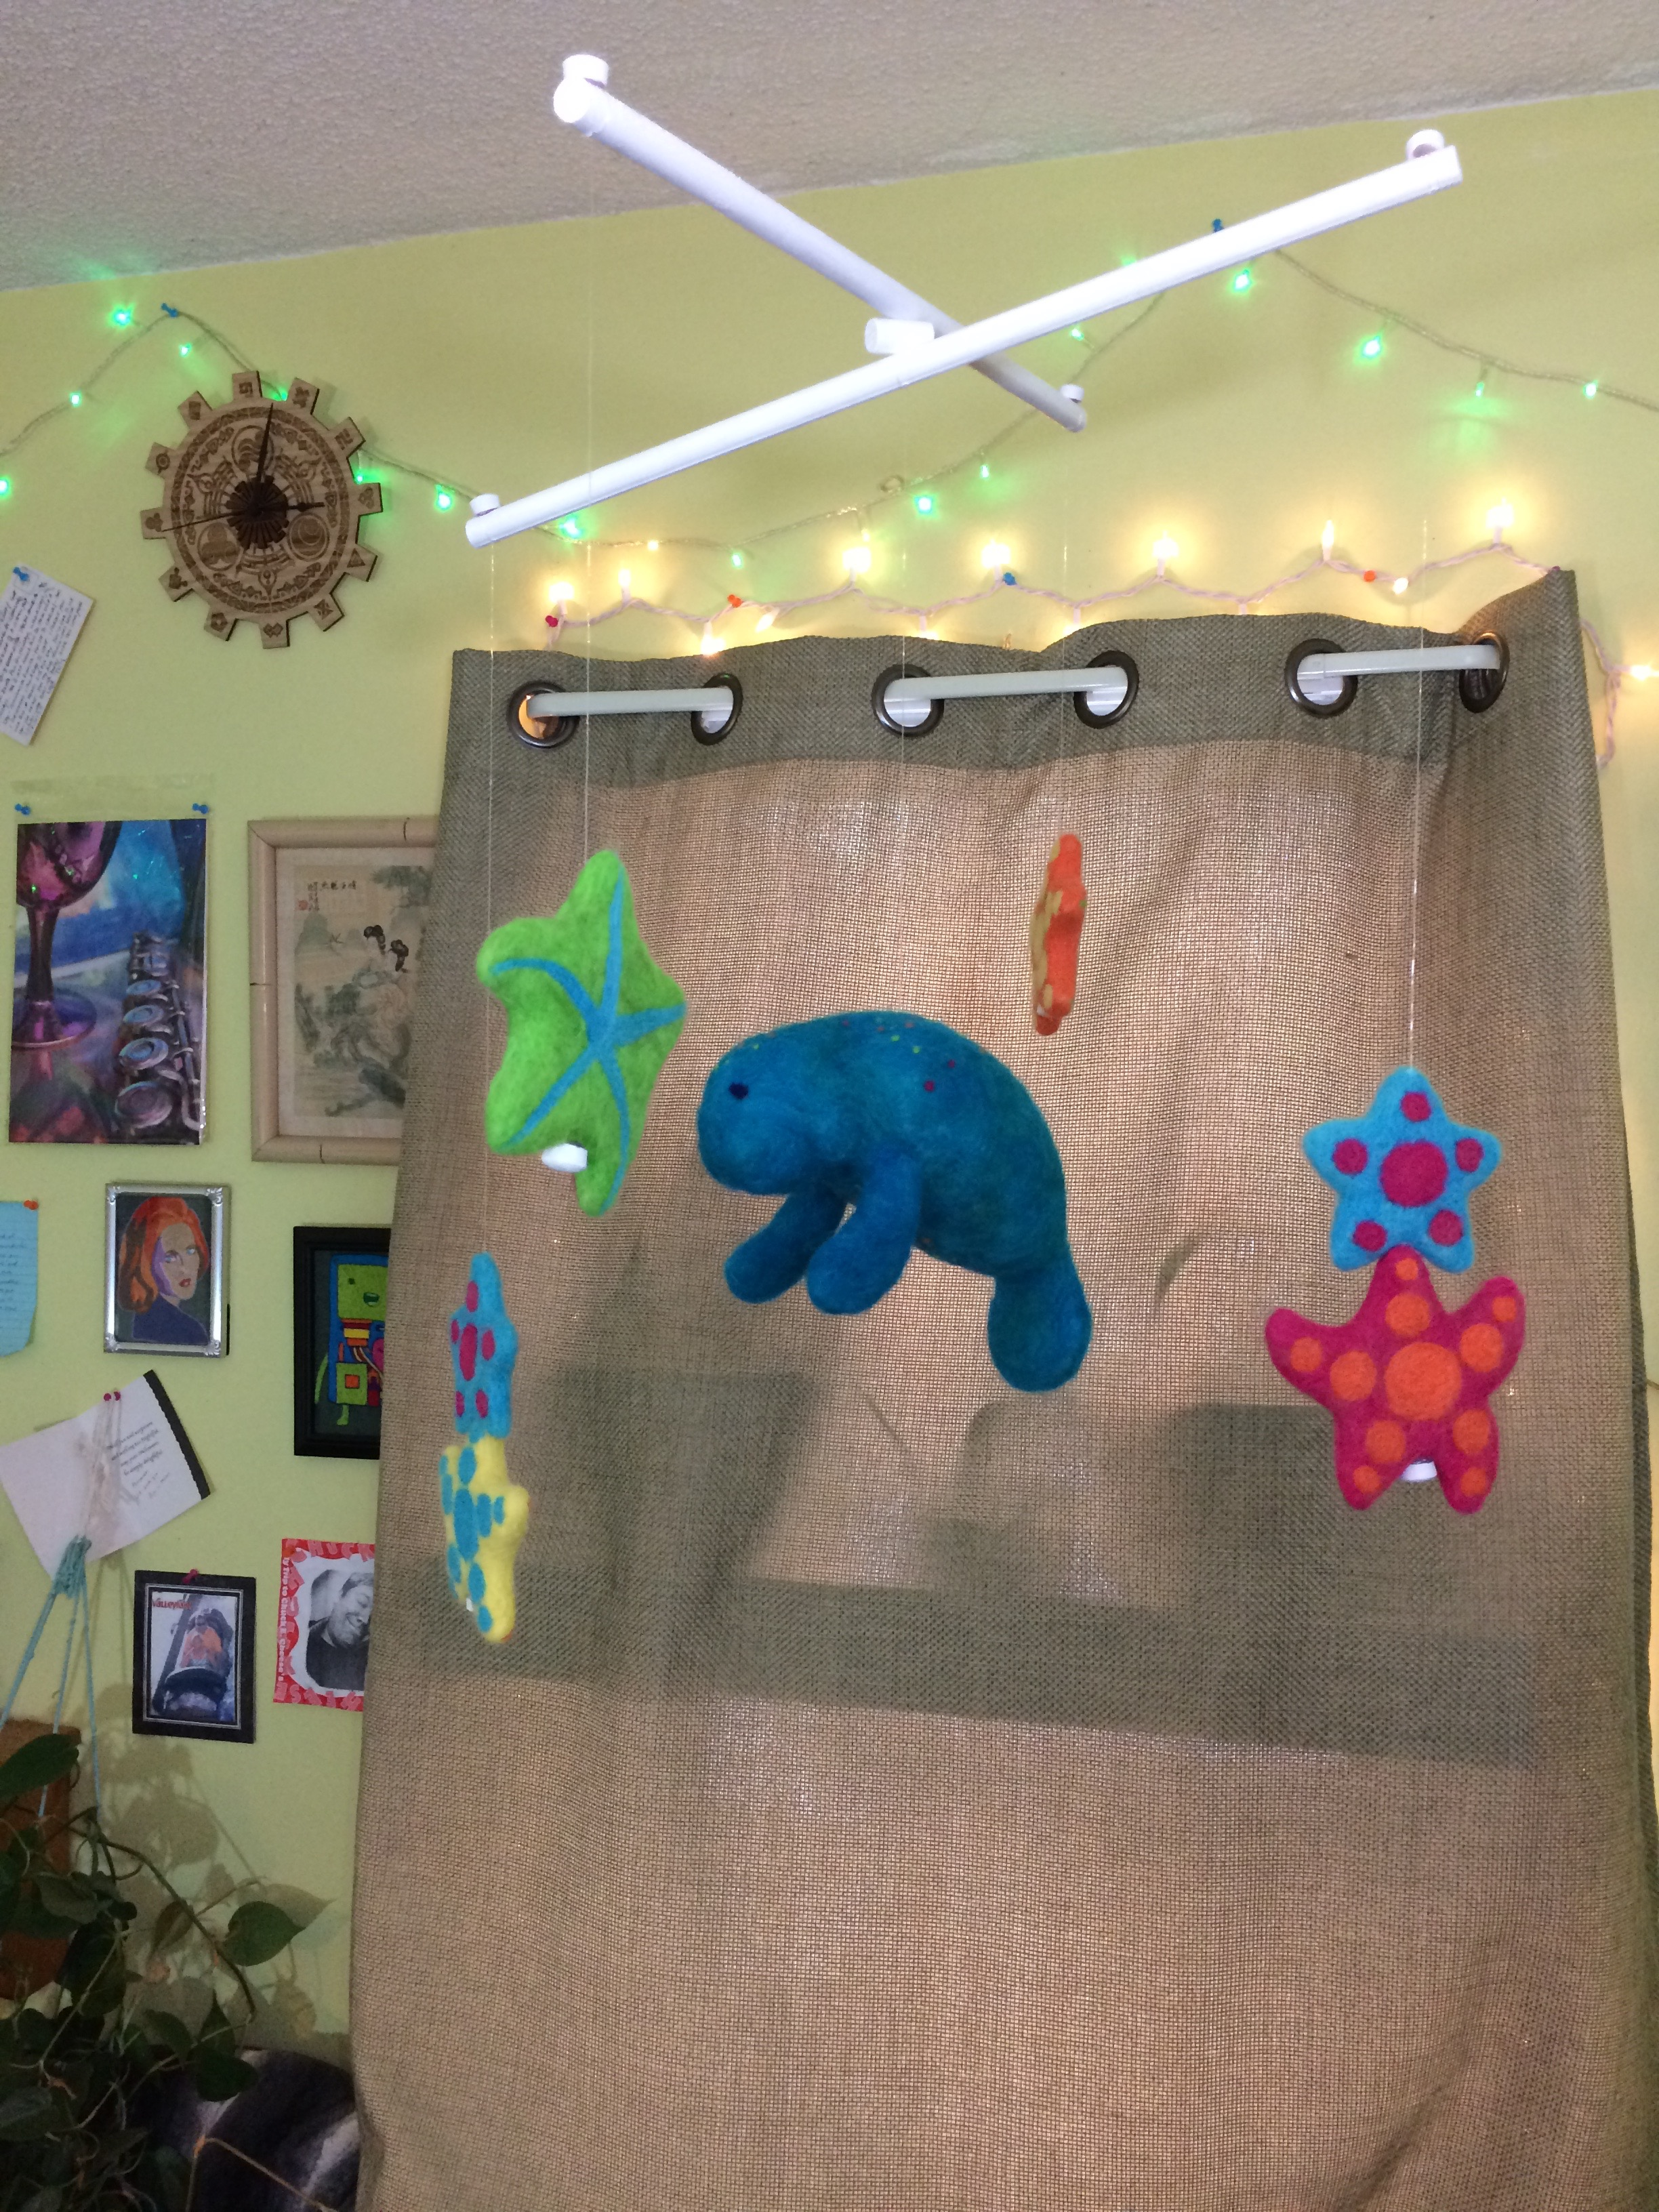 Crib Mobile made of needle-felted sea creatures: starfish and manatee.